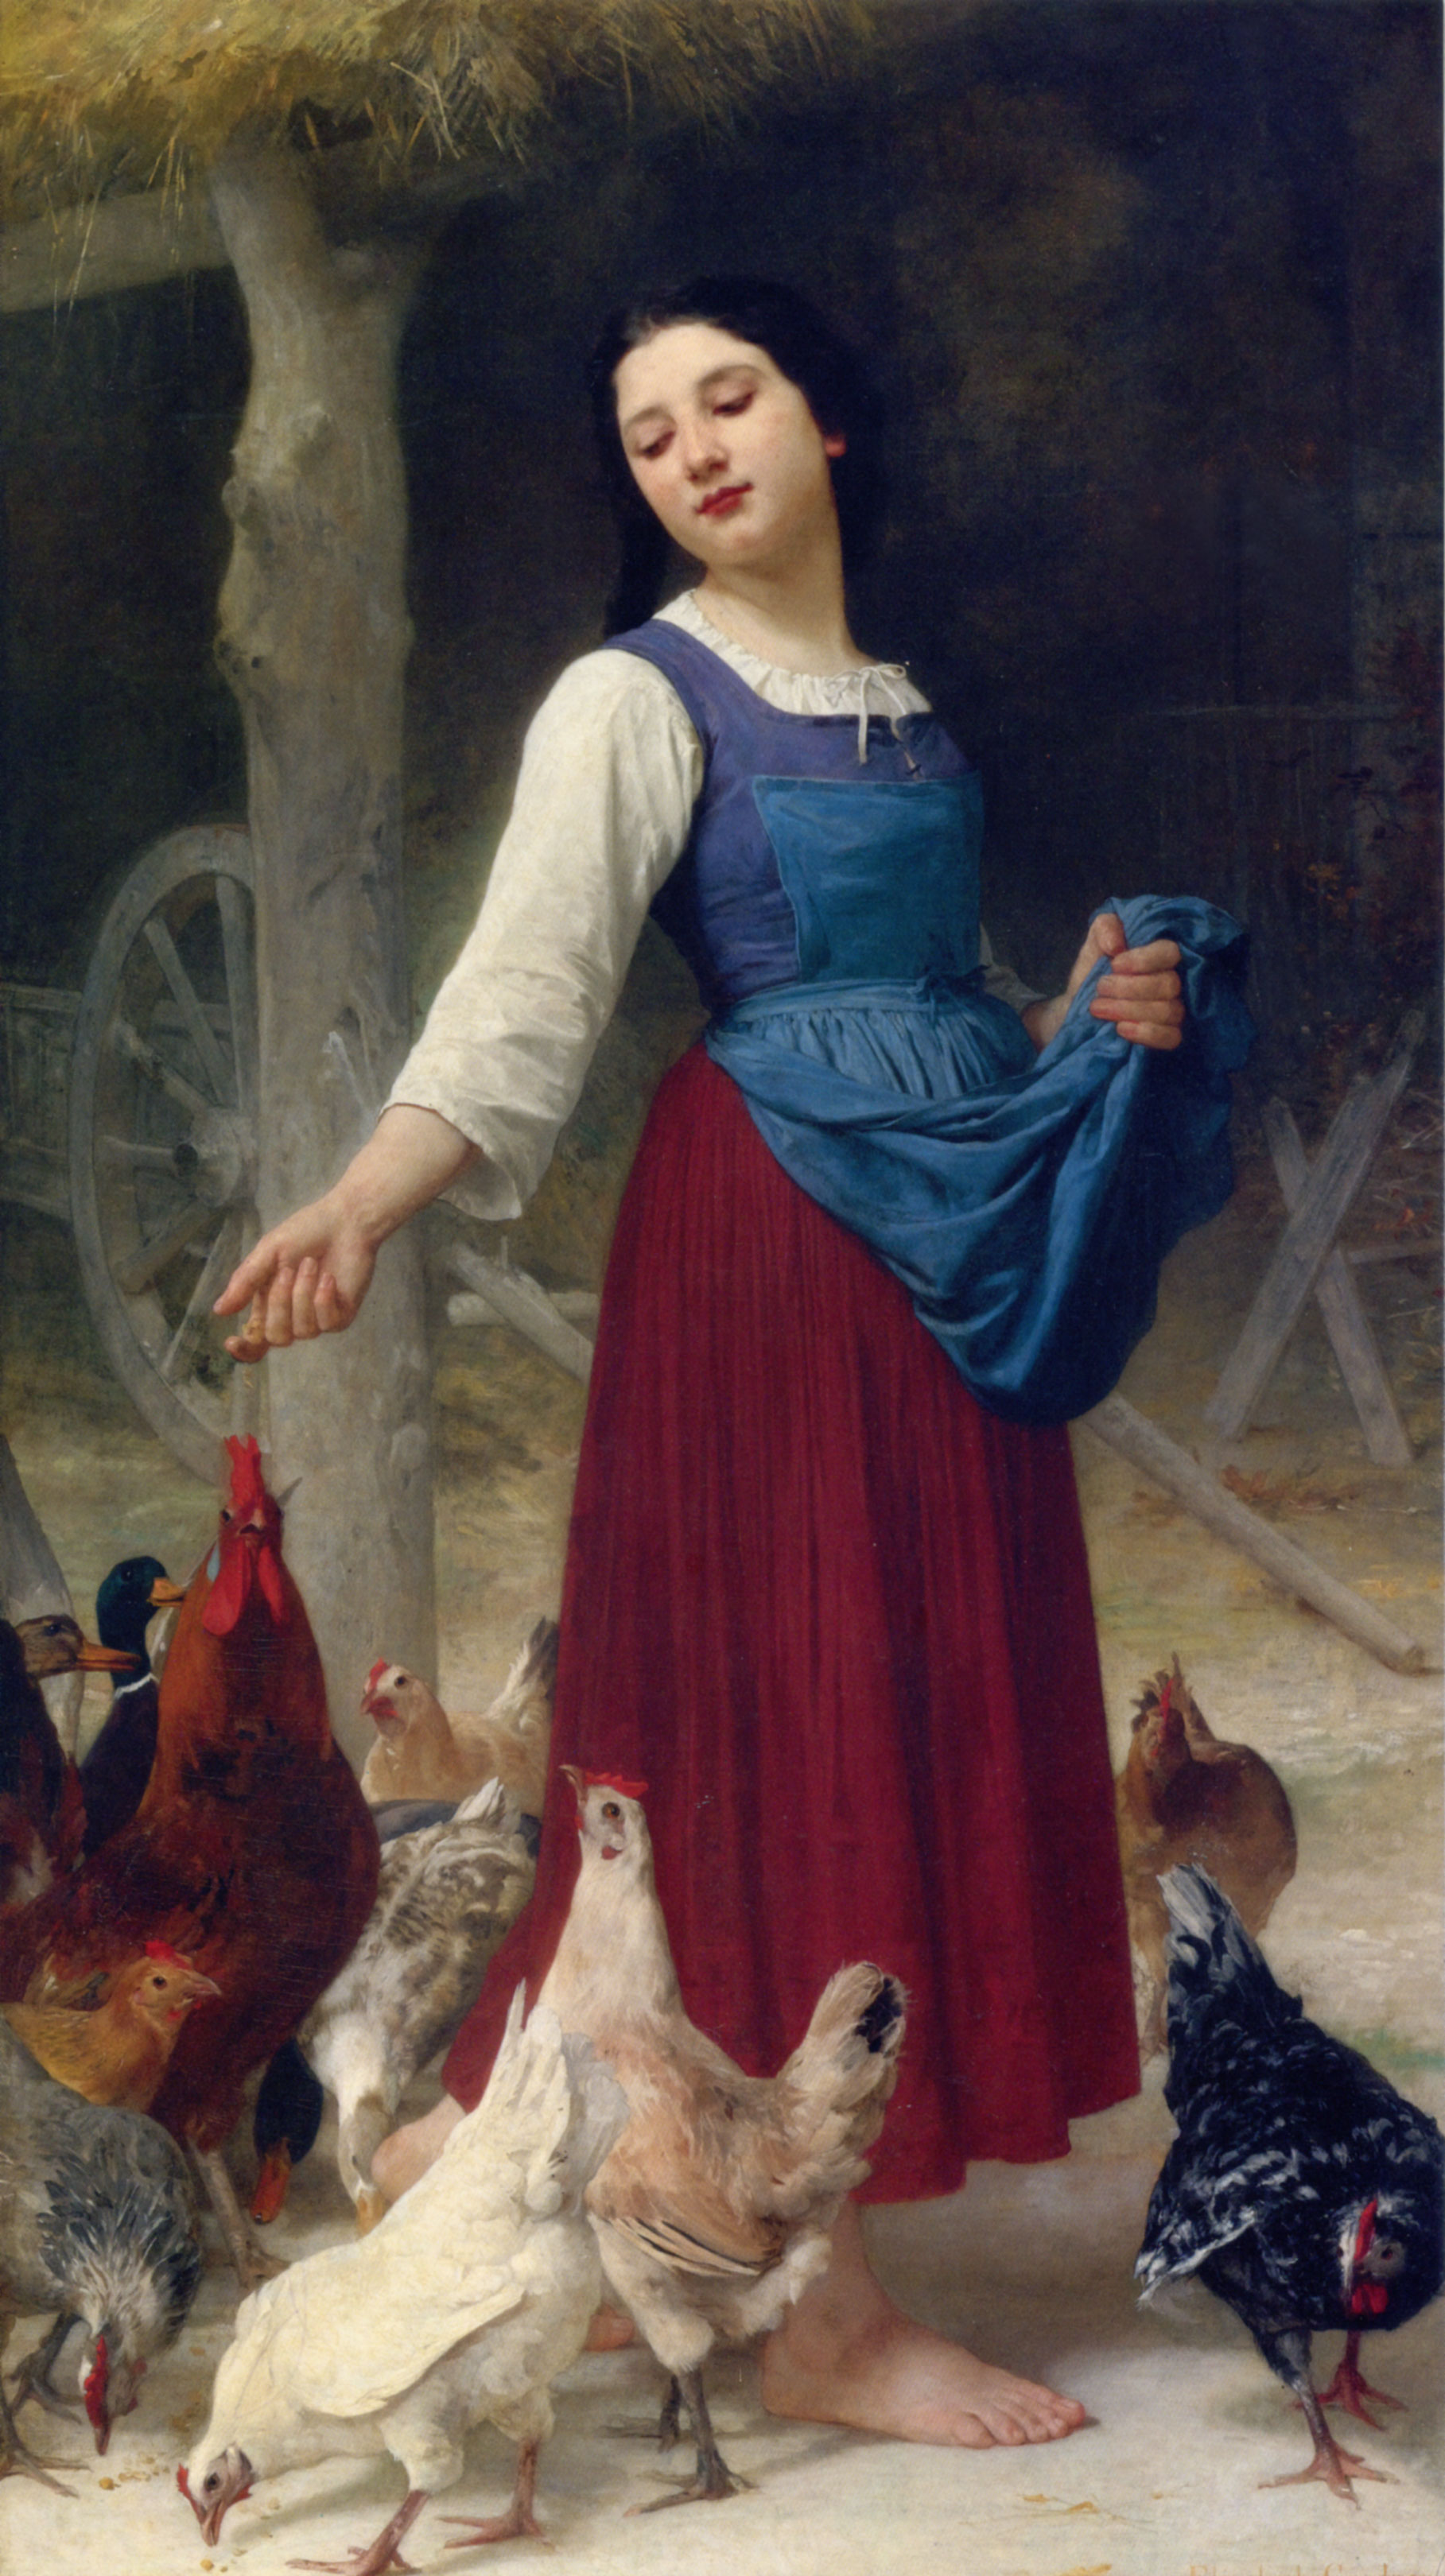 The Farmer's Daughter :: Elizabeth Jane Gardner Bouguereau - Young beauties portraits in art and painting ôîòî